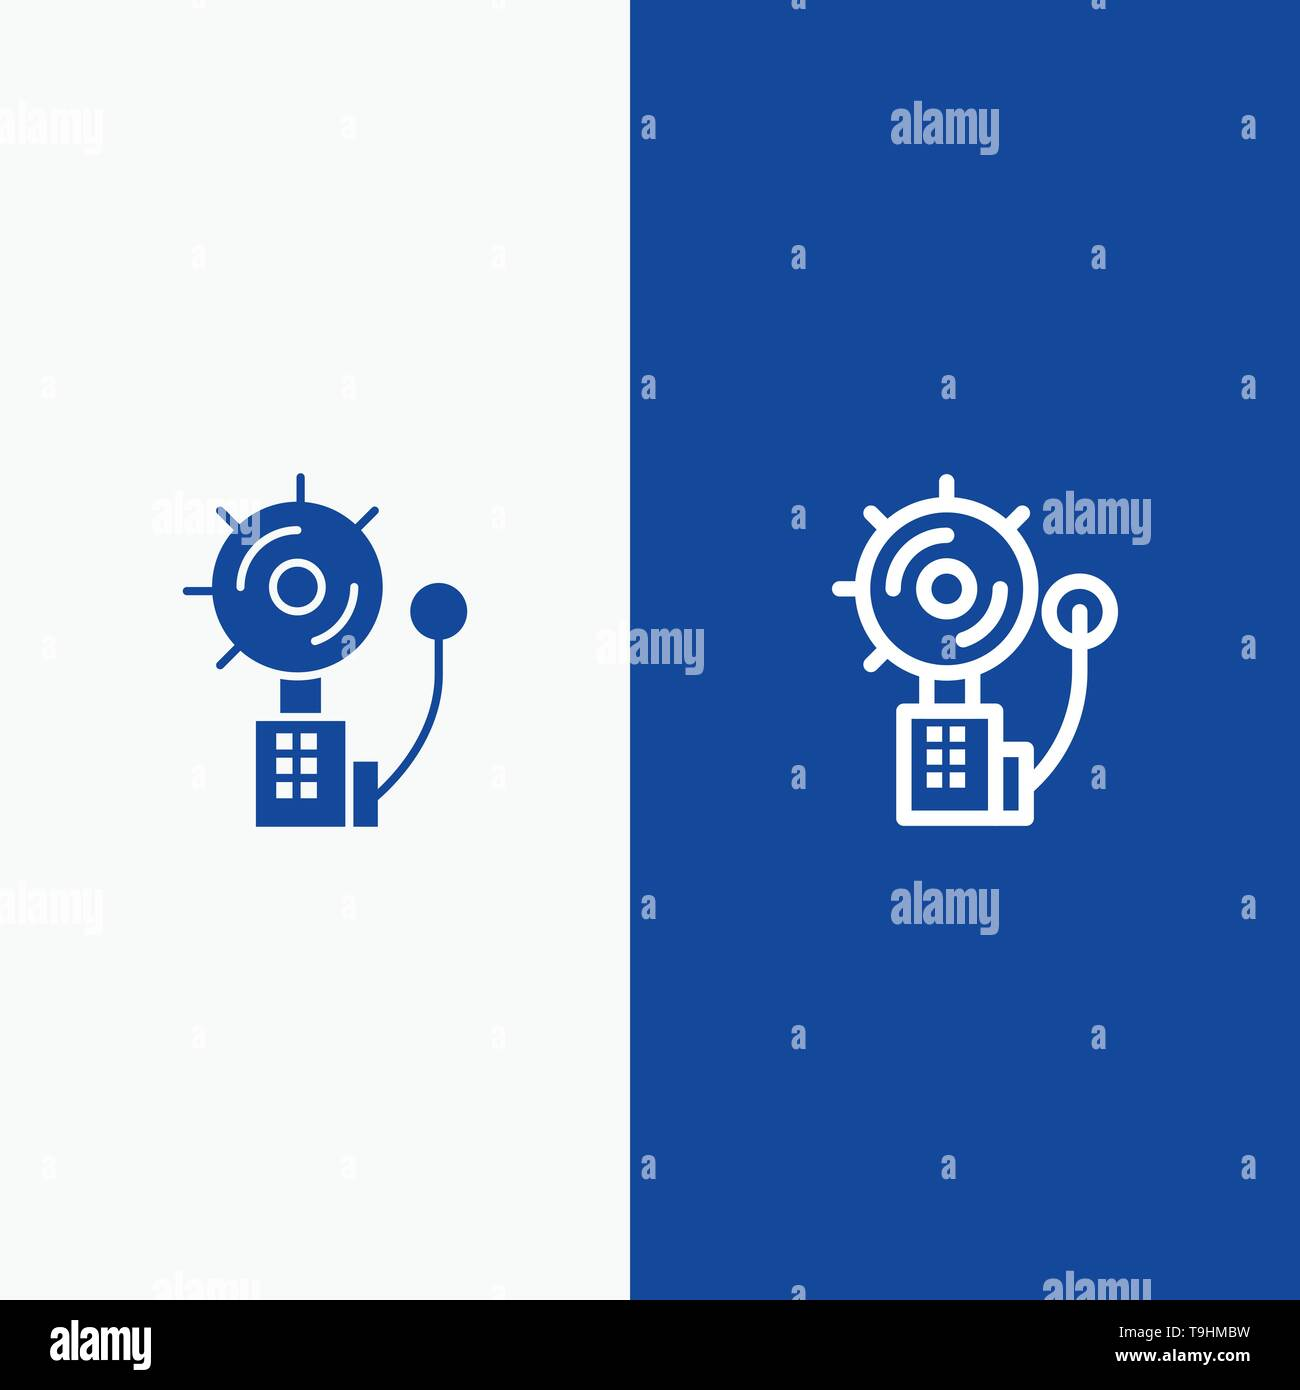 Alarm, Alert, Bell, Fire, Intruder Line and Glyph Solid icon Blue banner Line and Glyph Solid icon Blue banner - Stock Image